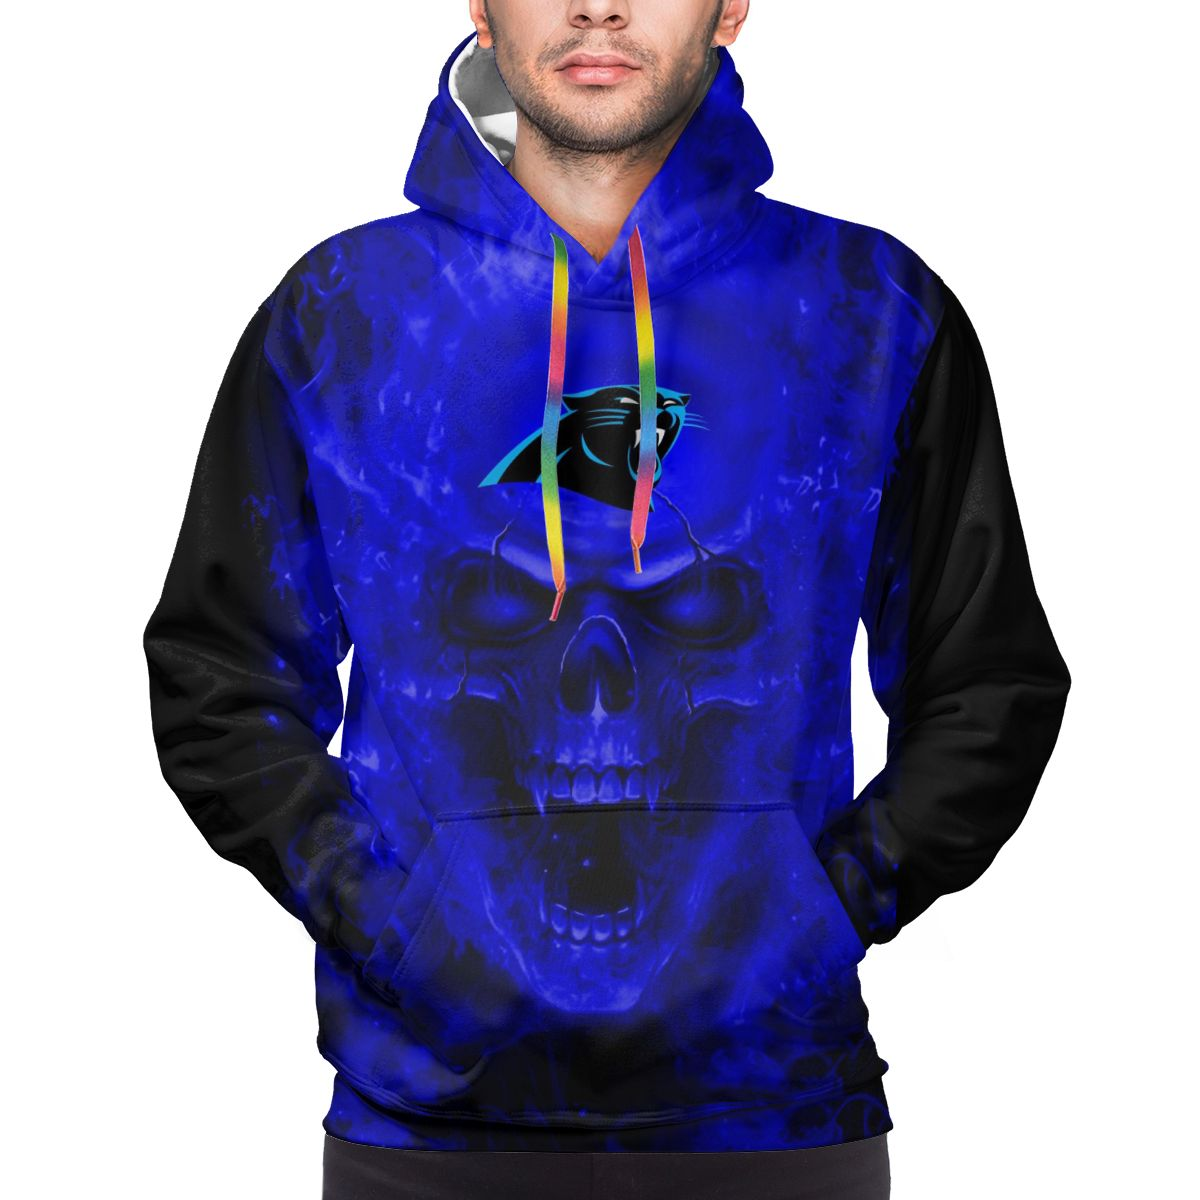 3D Skull Panthers Logo Print Hoodies For Men Pullover Sweatshirt